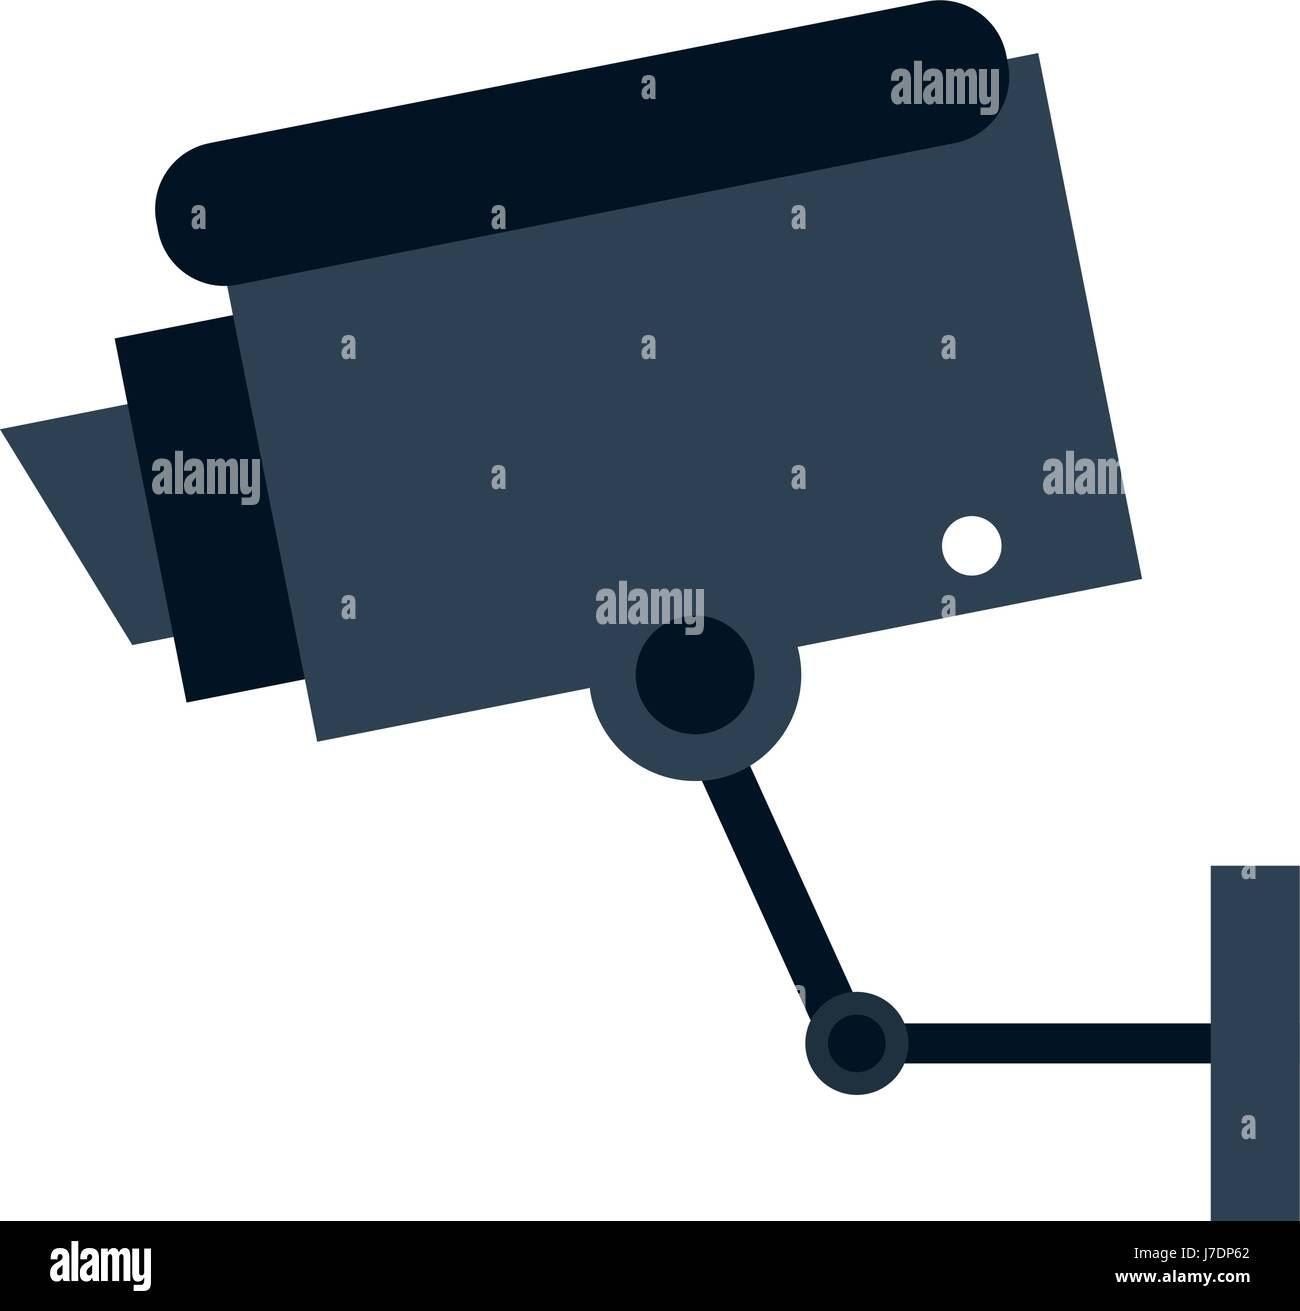 security or surveillance camera icon image  - Stock Image